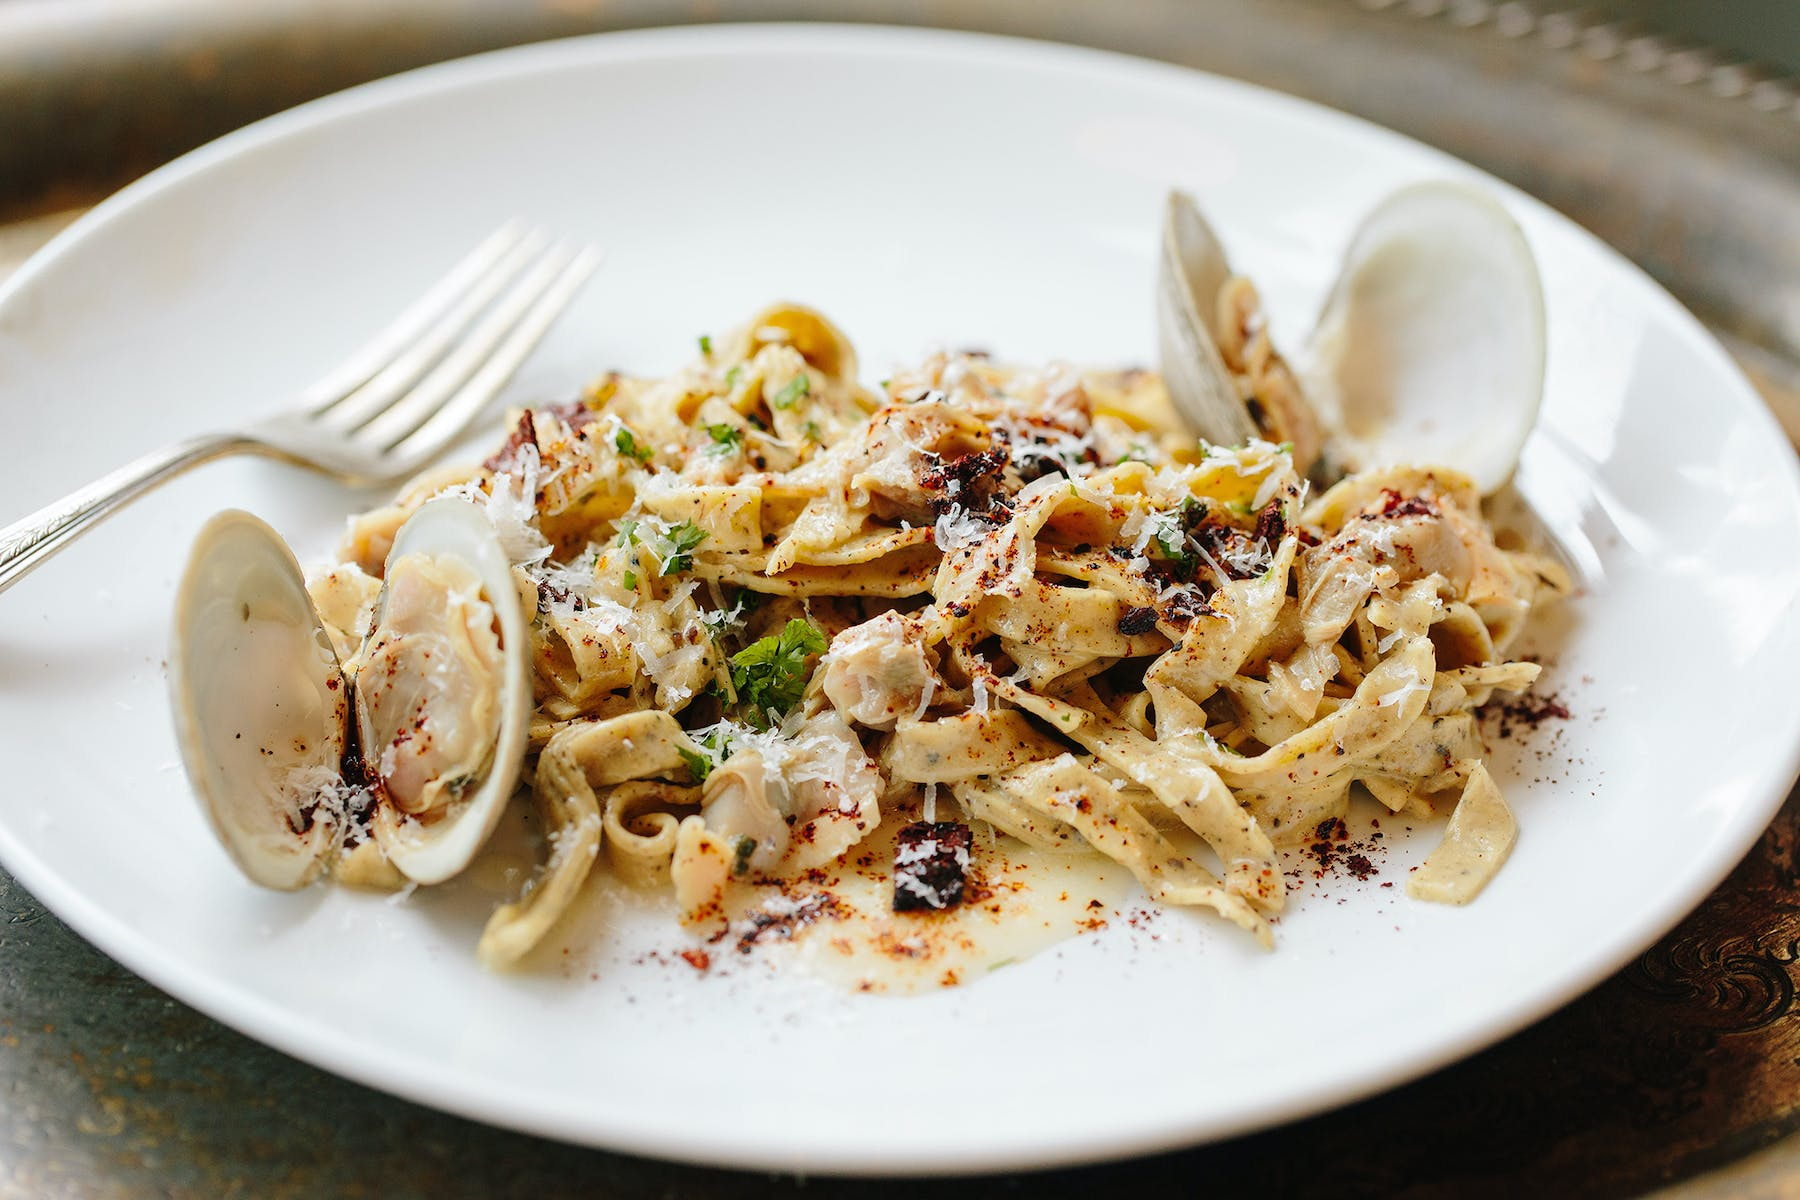 a plate of pasta with oysters